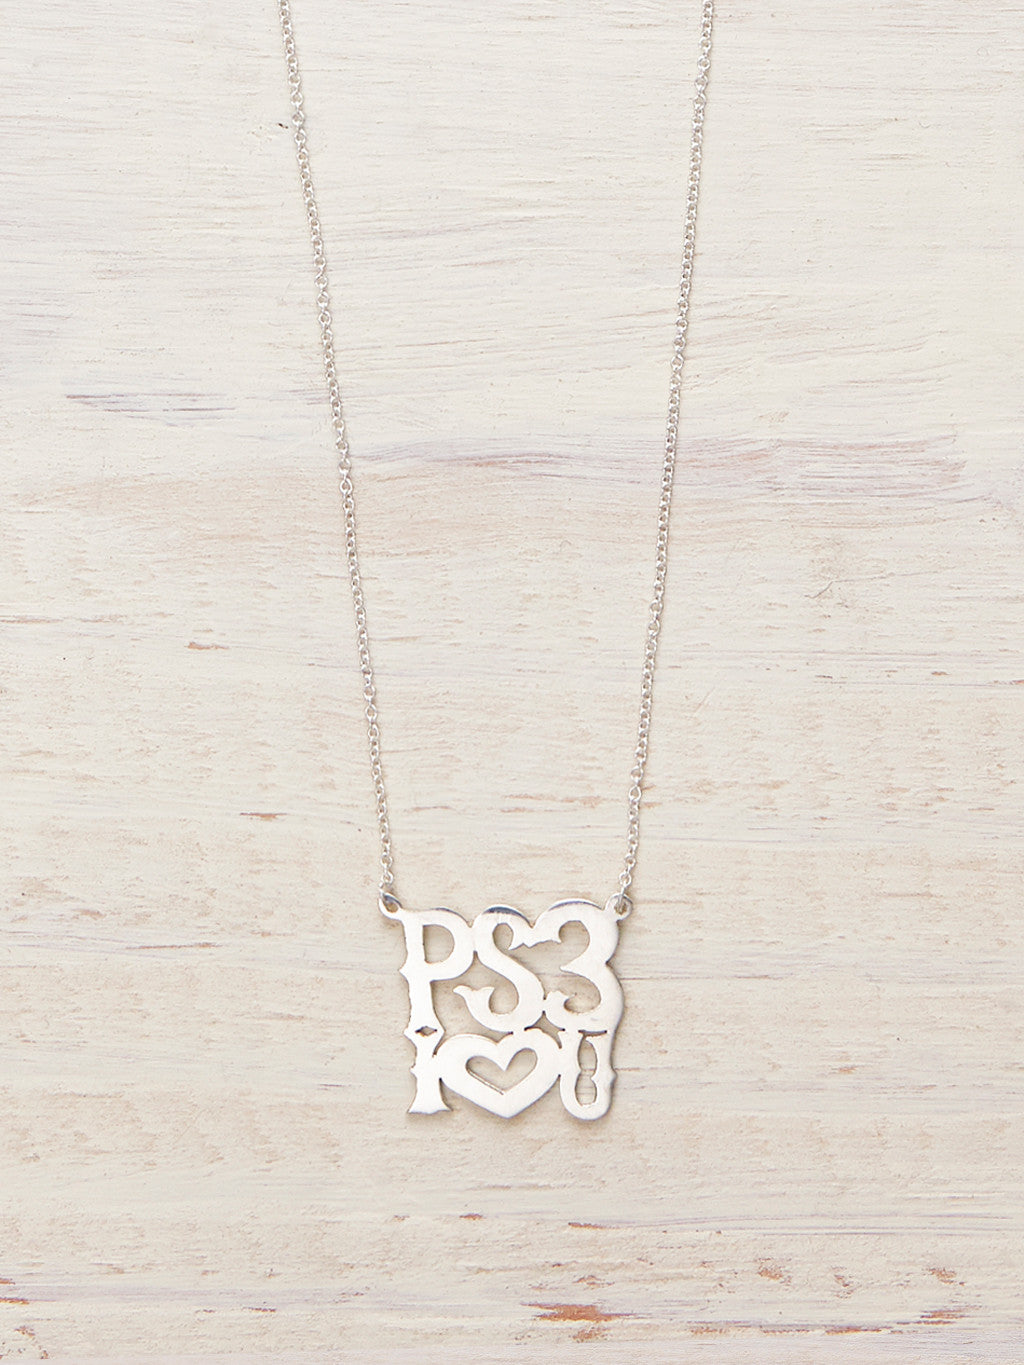 PS3 I Love You Necklace - LUNESSA